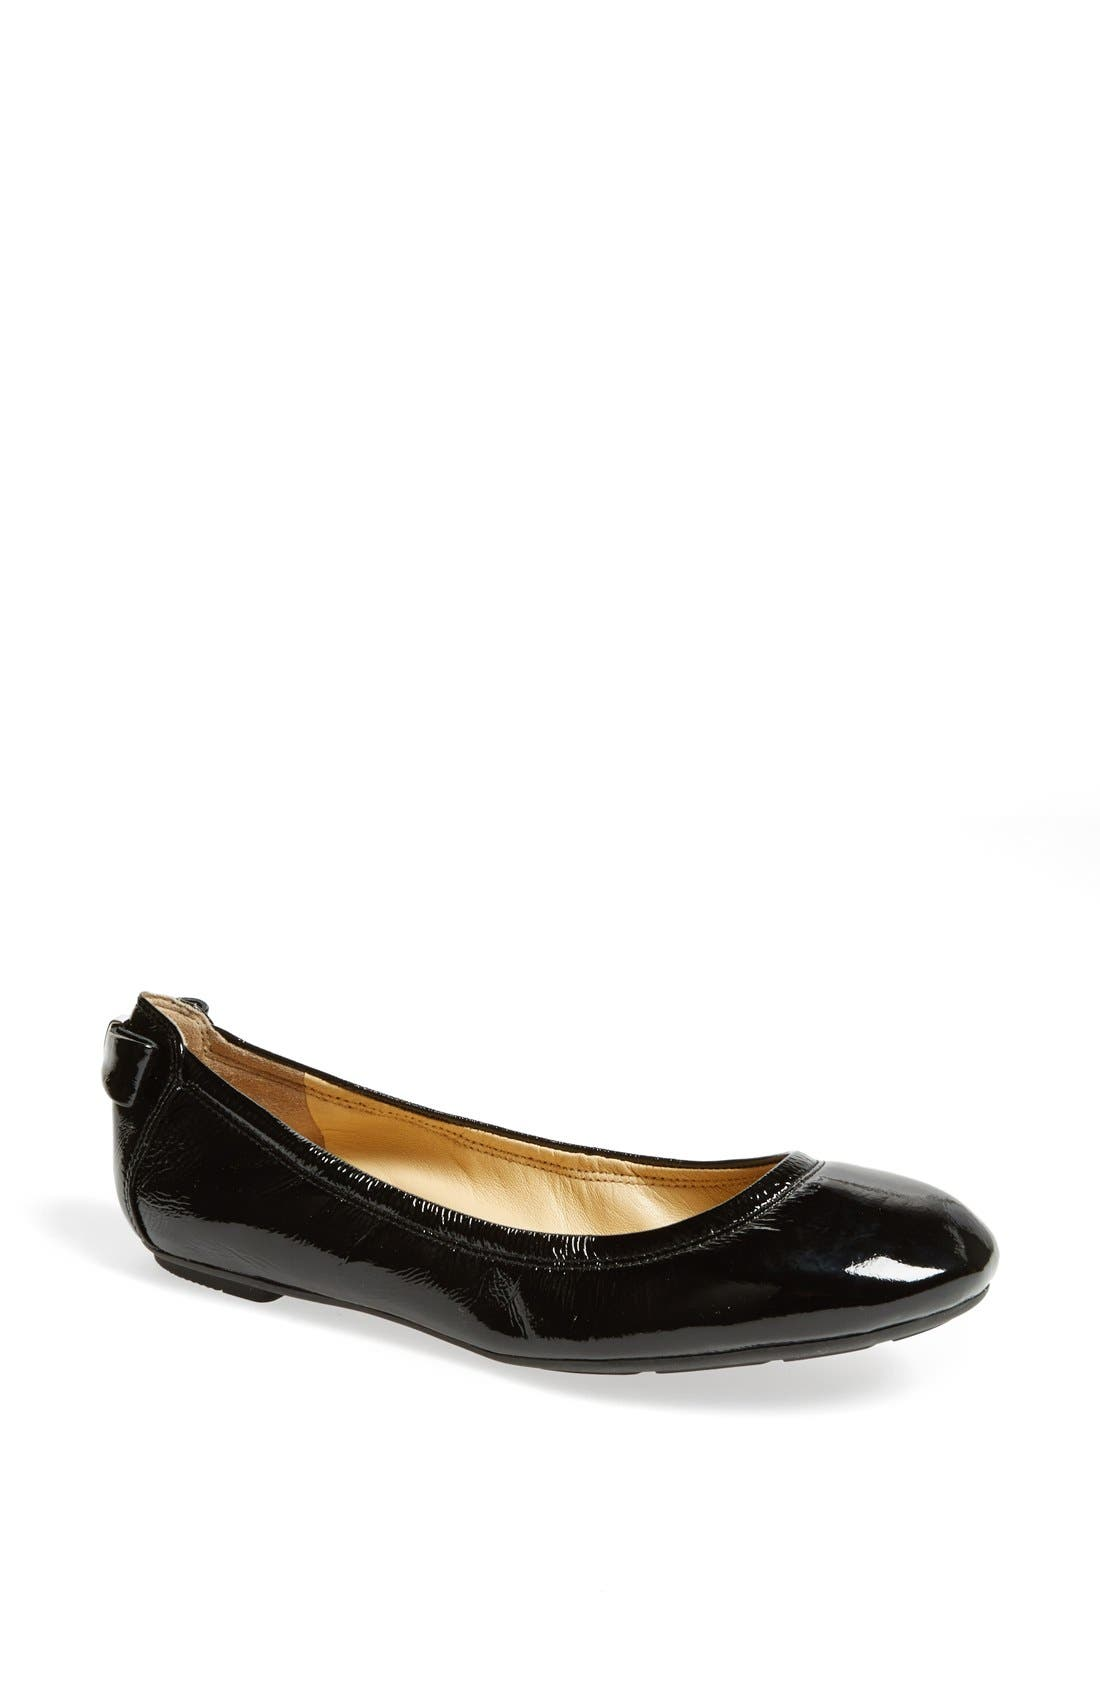 Alternate Image 1 Selected - Cole Haan 'Manhattan' Waterproof Ballet Flat